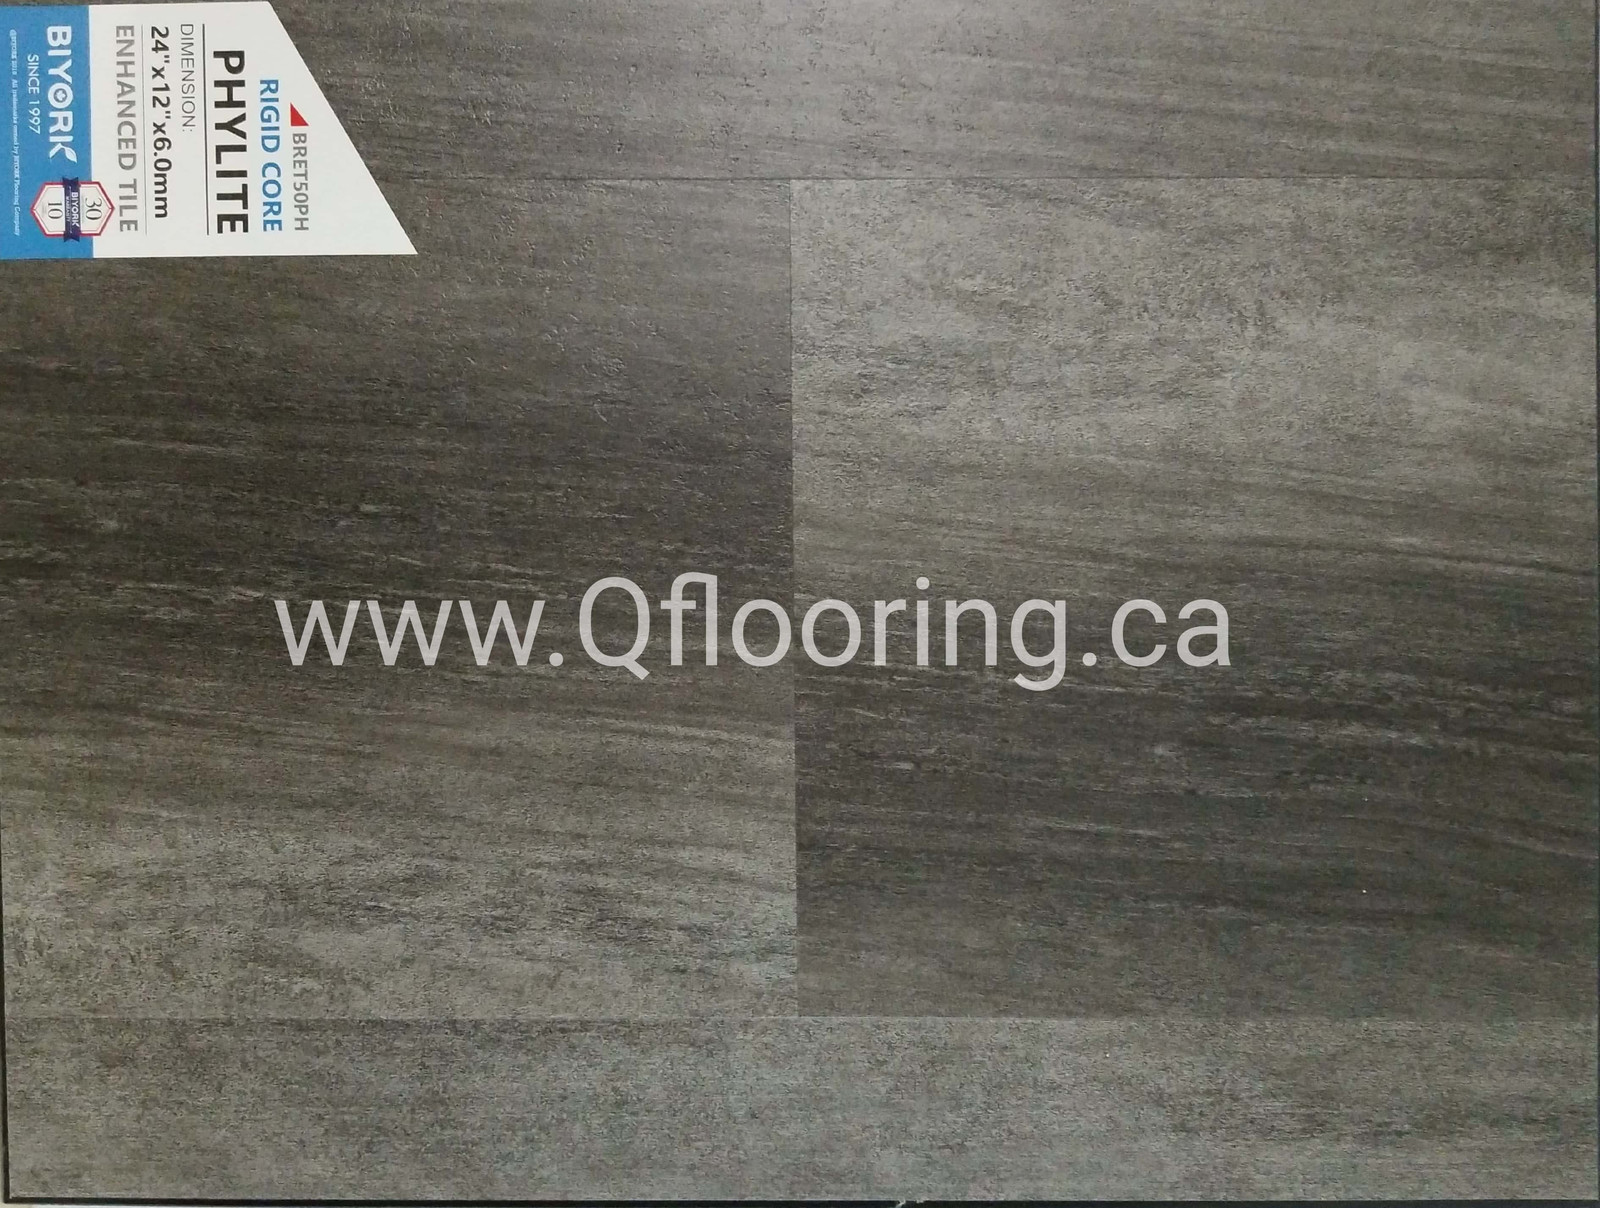 Q Flooring Waterproof Vinyl Planks